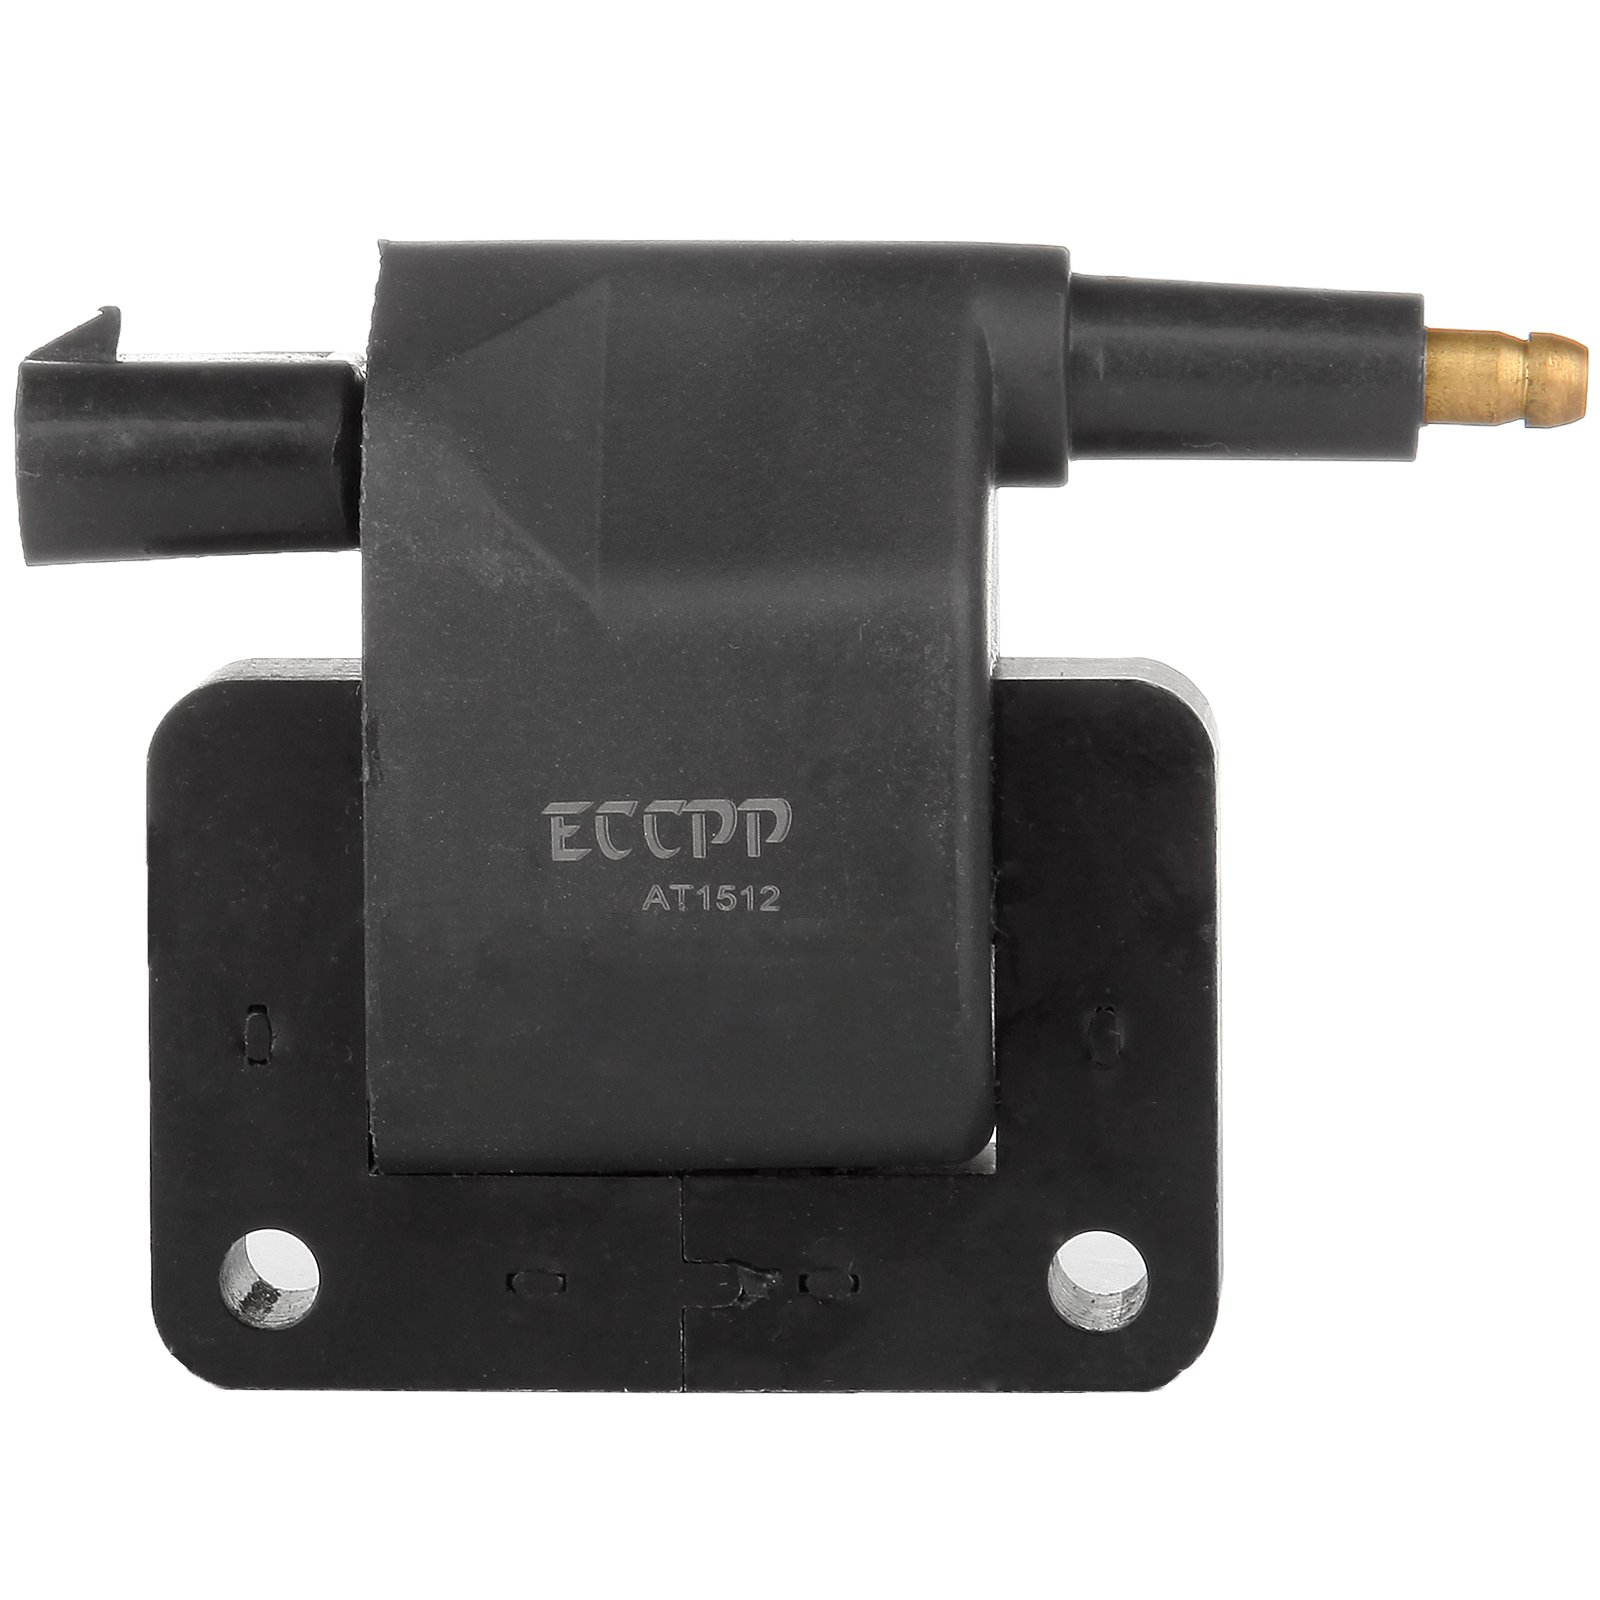 ECCPP® New Ignition Coil for Various Chrysler Dodge Jeep Plymouth 5.2L 3.9L 5.9L UF97 5C1087 52-1974 IC41 91 92 93 94 95 96 97